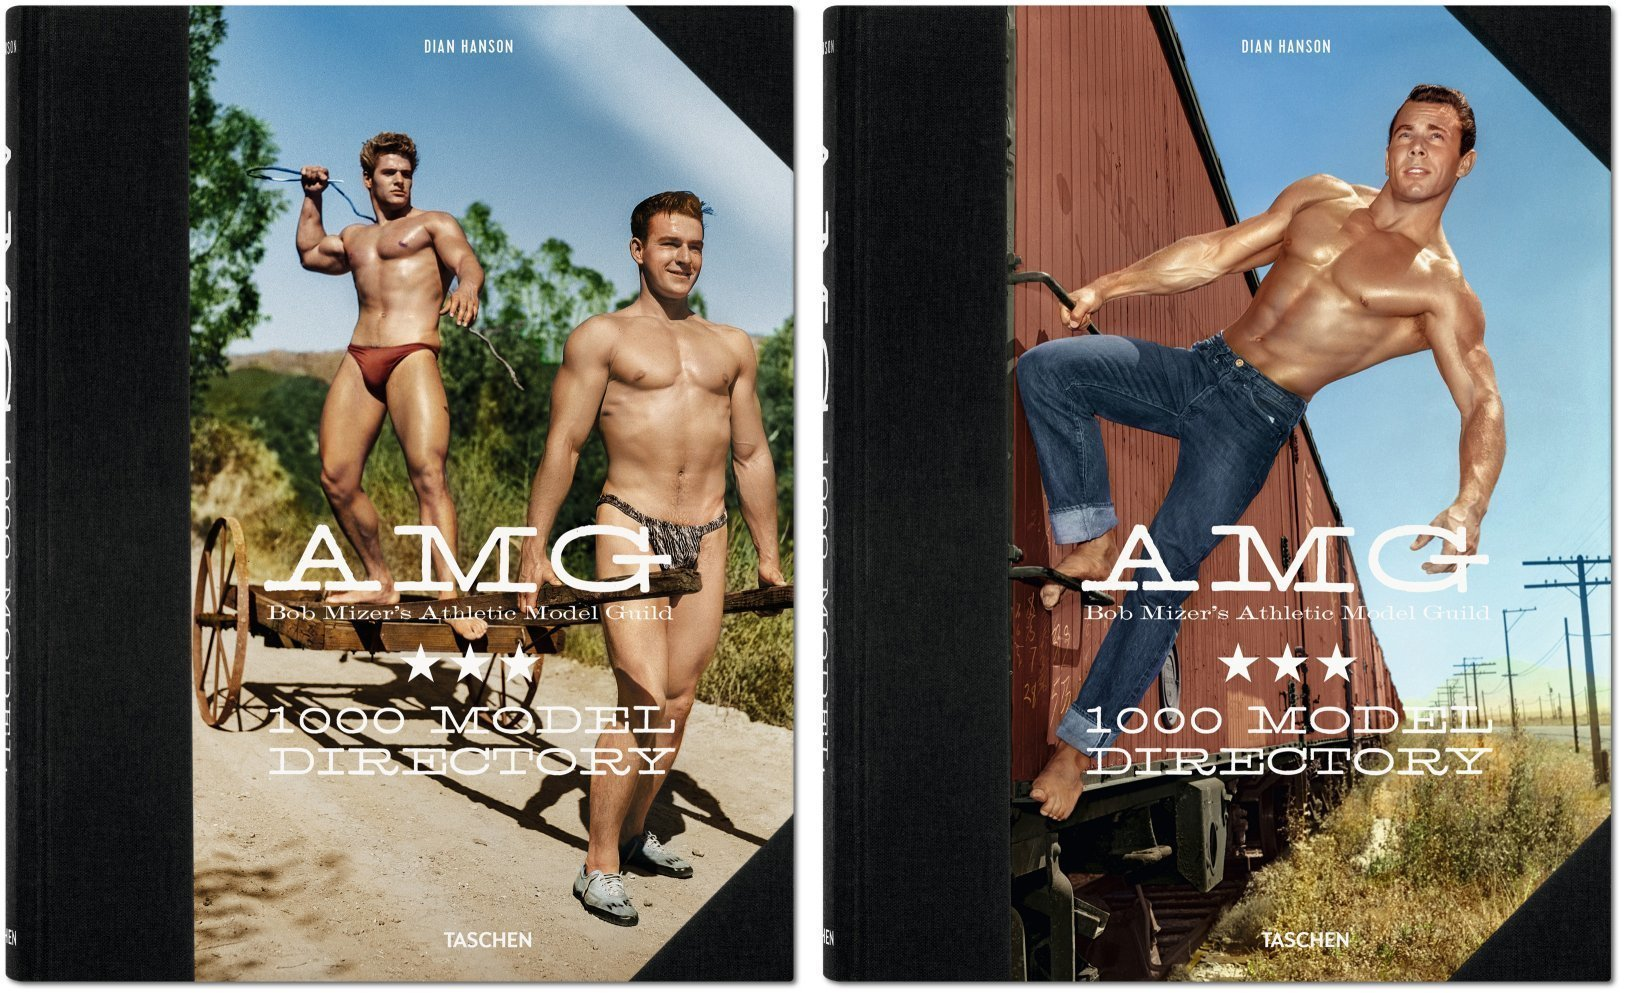 Theme, nude athletic model phrase